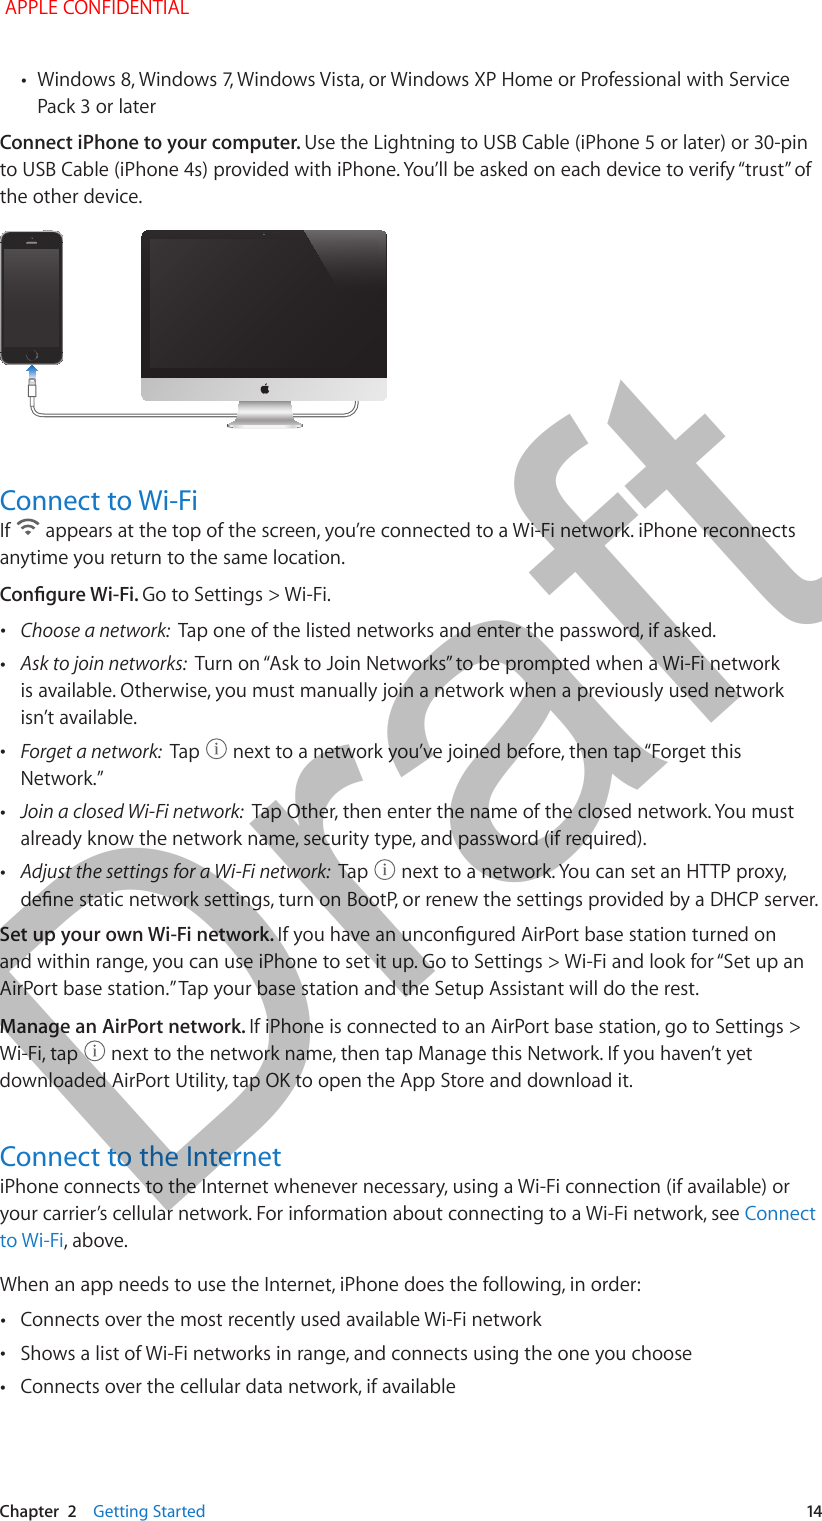 Apple E2817a Cellular Phone With Bluetooth And Wlan Radios User Iphone 5 Usb Cord Wiring Diagram Chapter 2 Getting Started